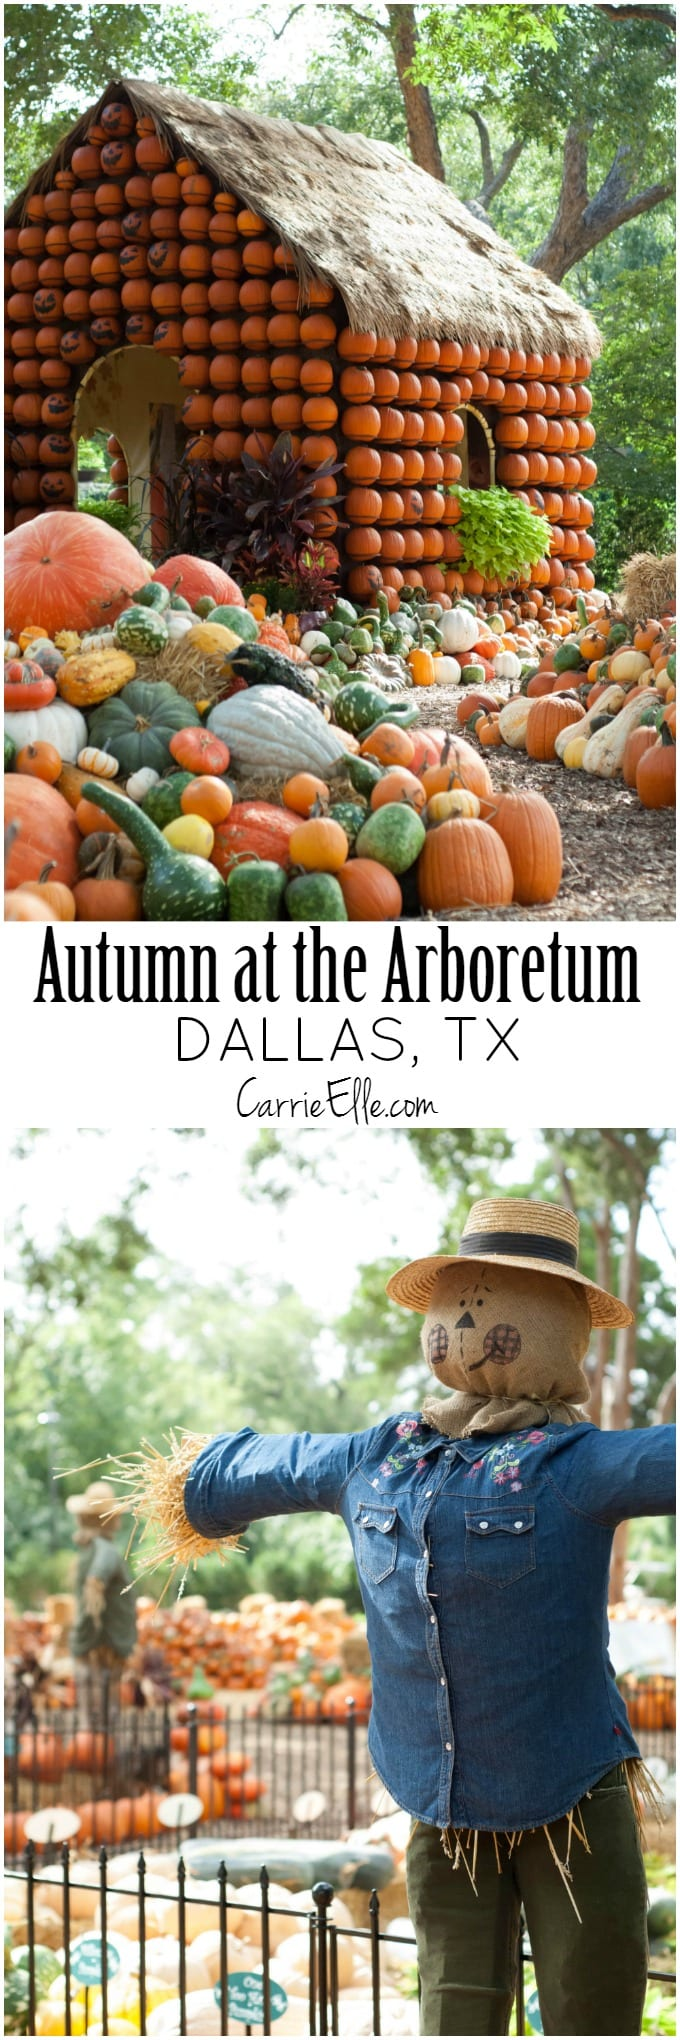 Autumn at the Arboretum Dallas